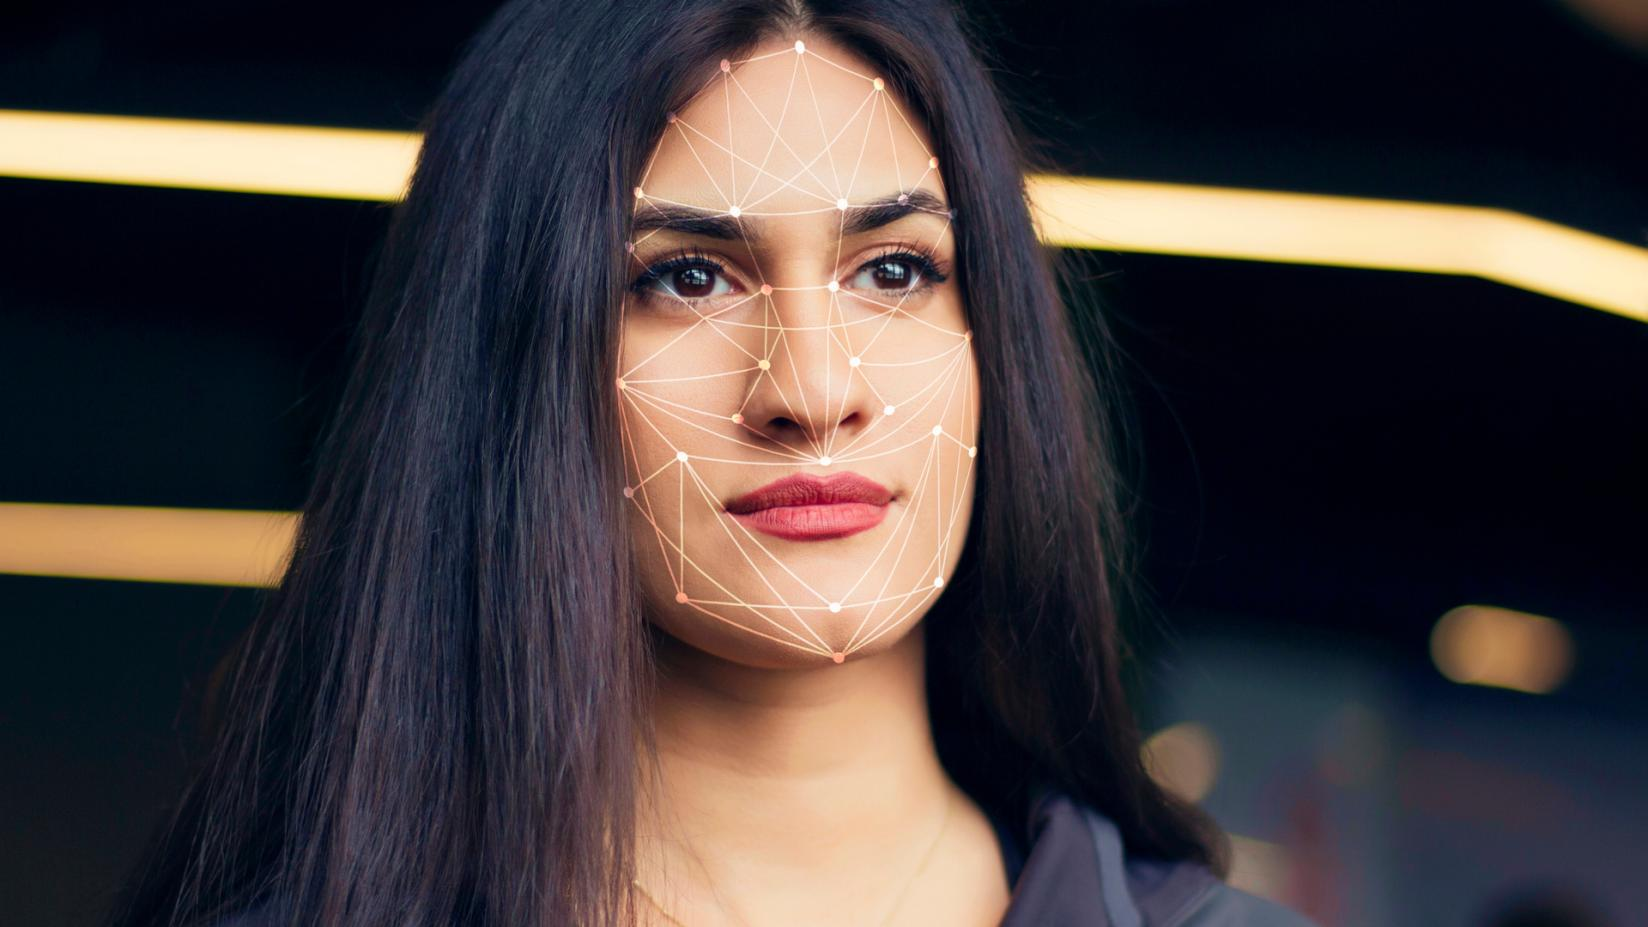 Visualization of facial recognition